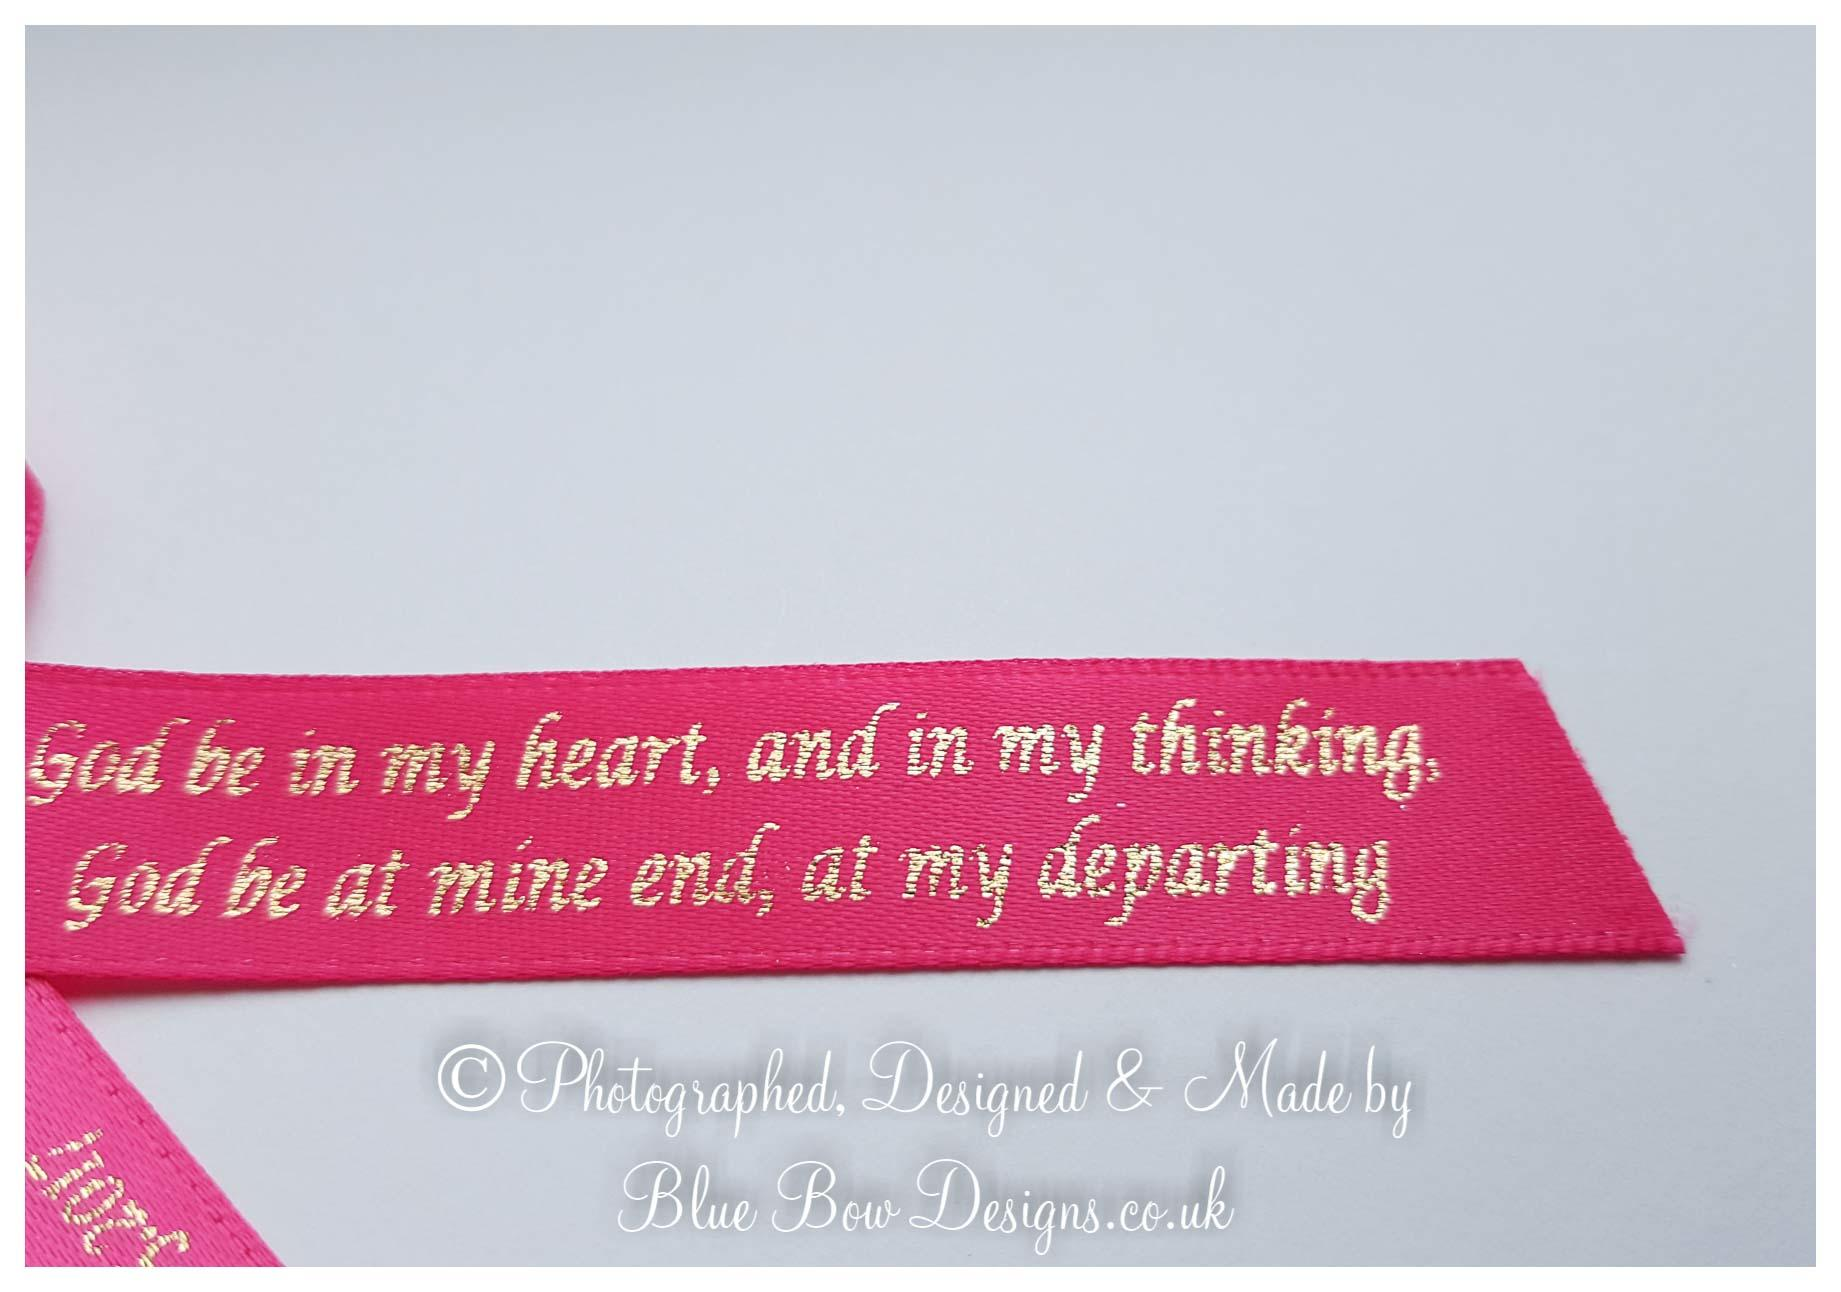 Fuchsia pink memorial ribbons